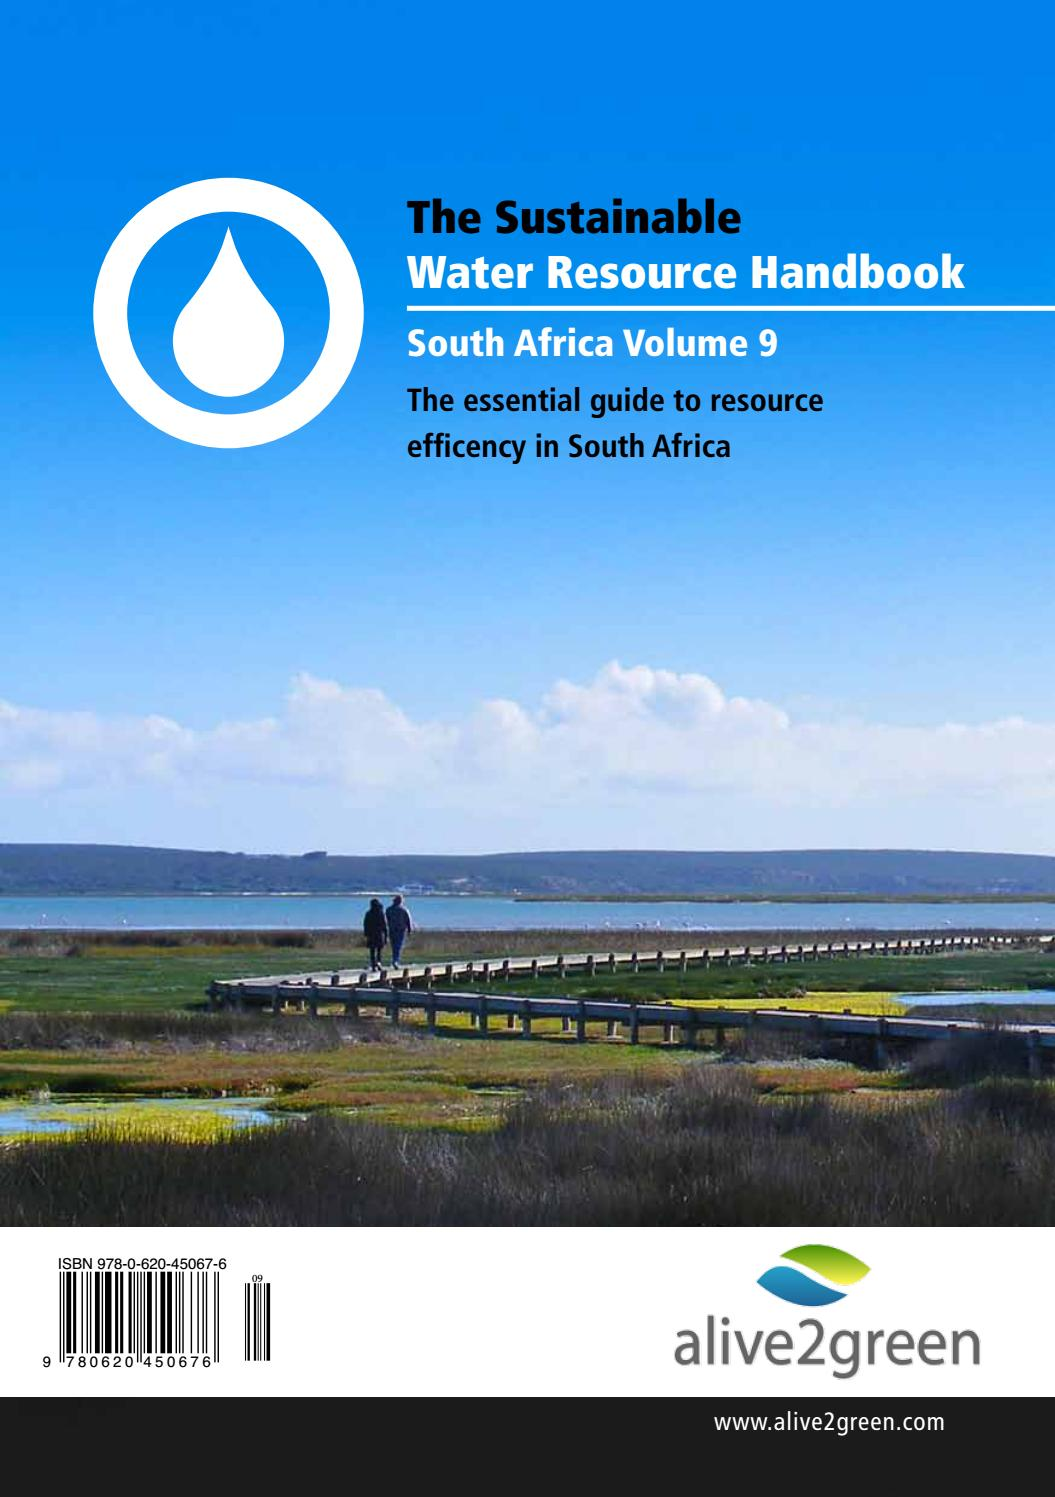 The Sustainable Water Resource Handbook v9 by Alive2Green